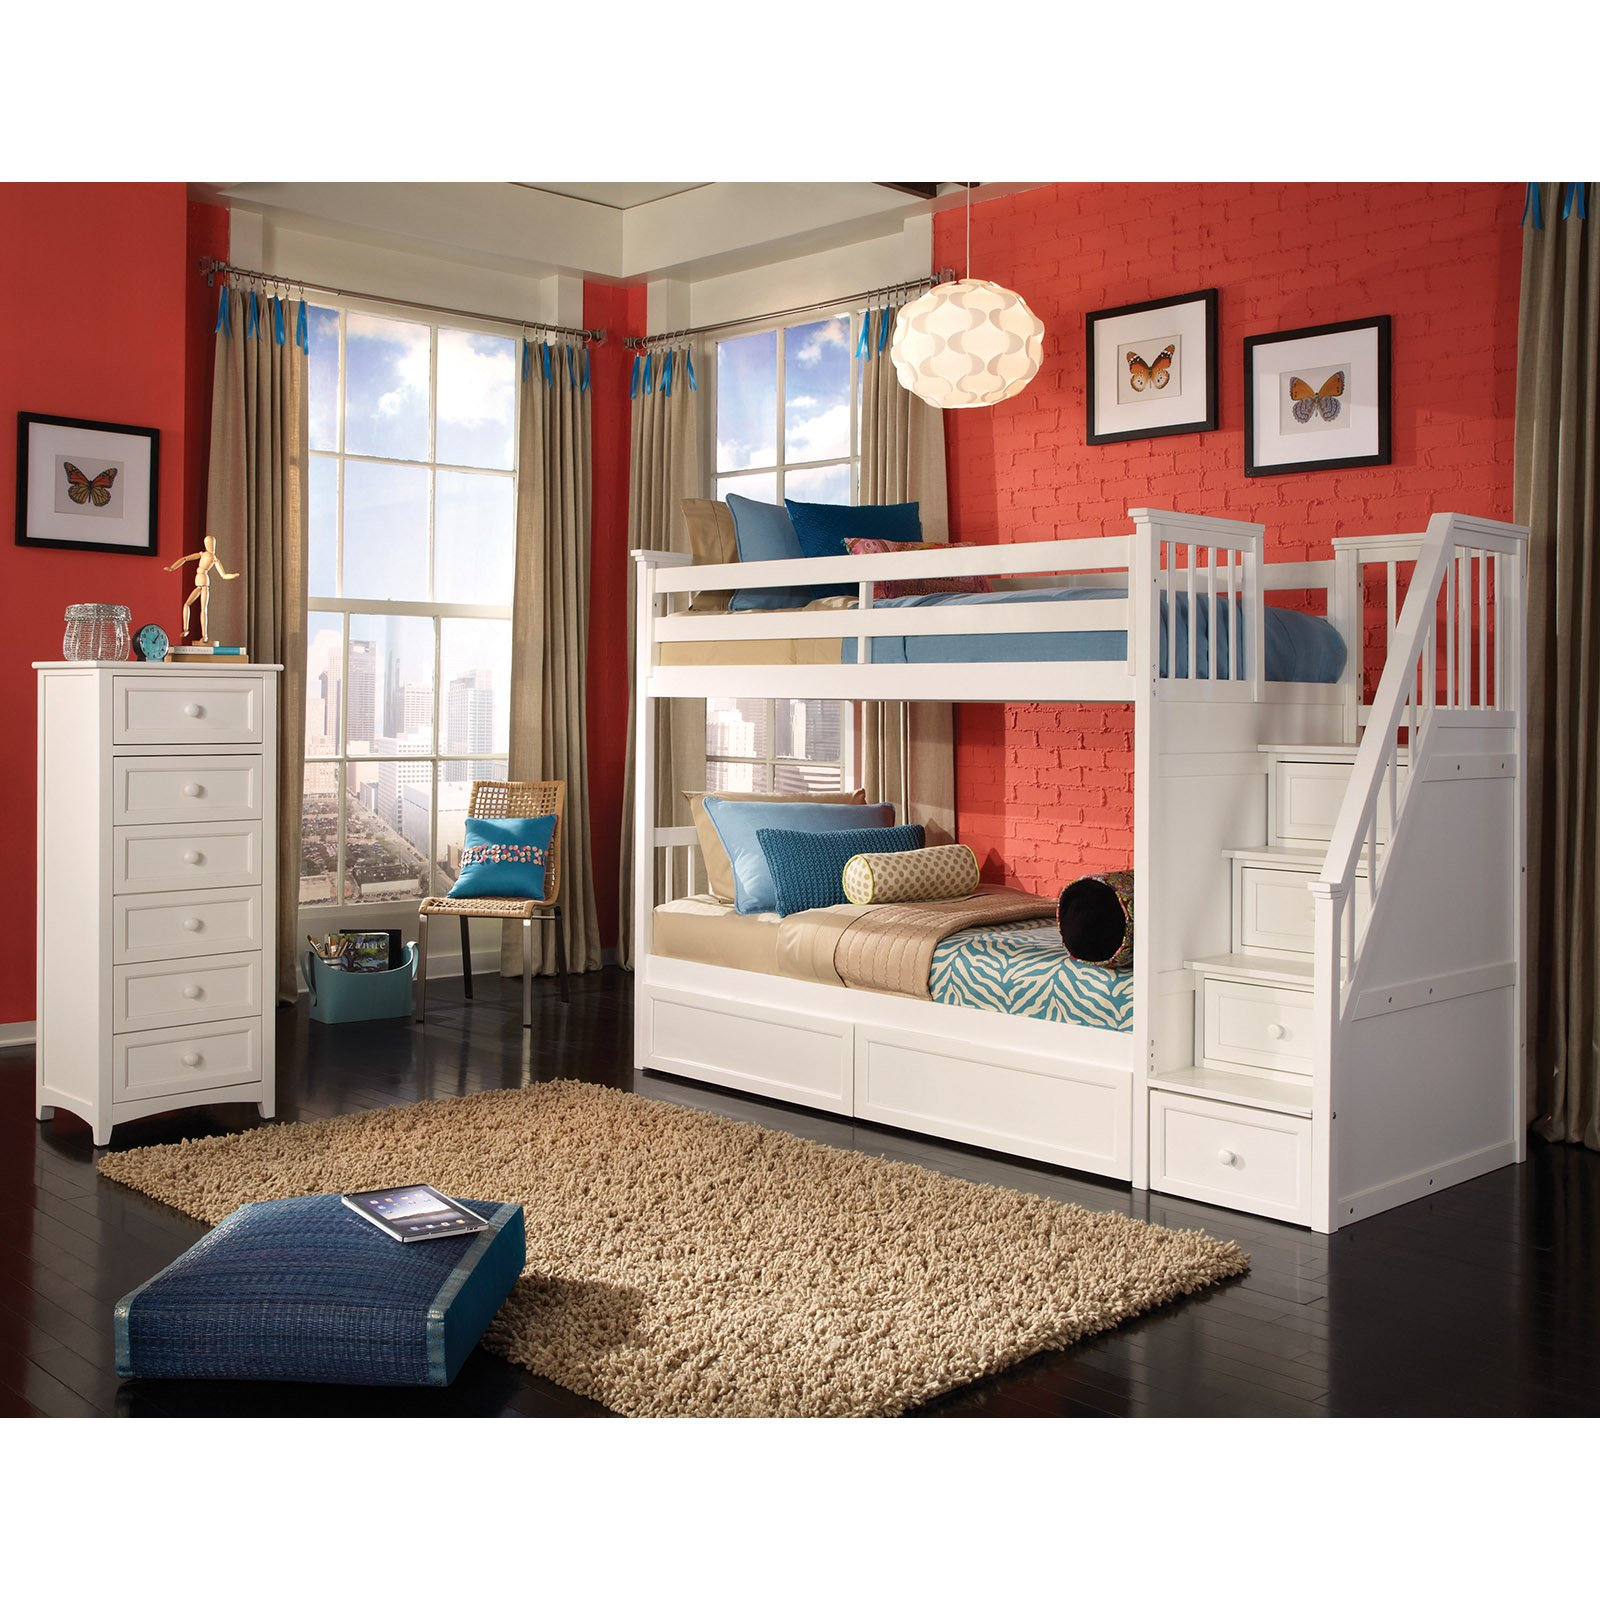 ikea twin bed frames homesfeed. Black Bedroom Furniture Sets. Home Design Ideas